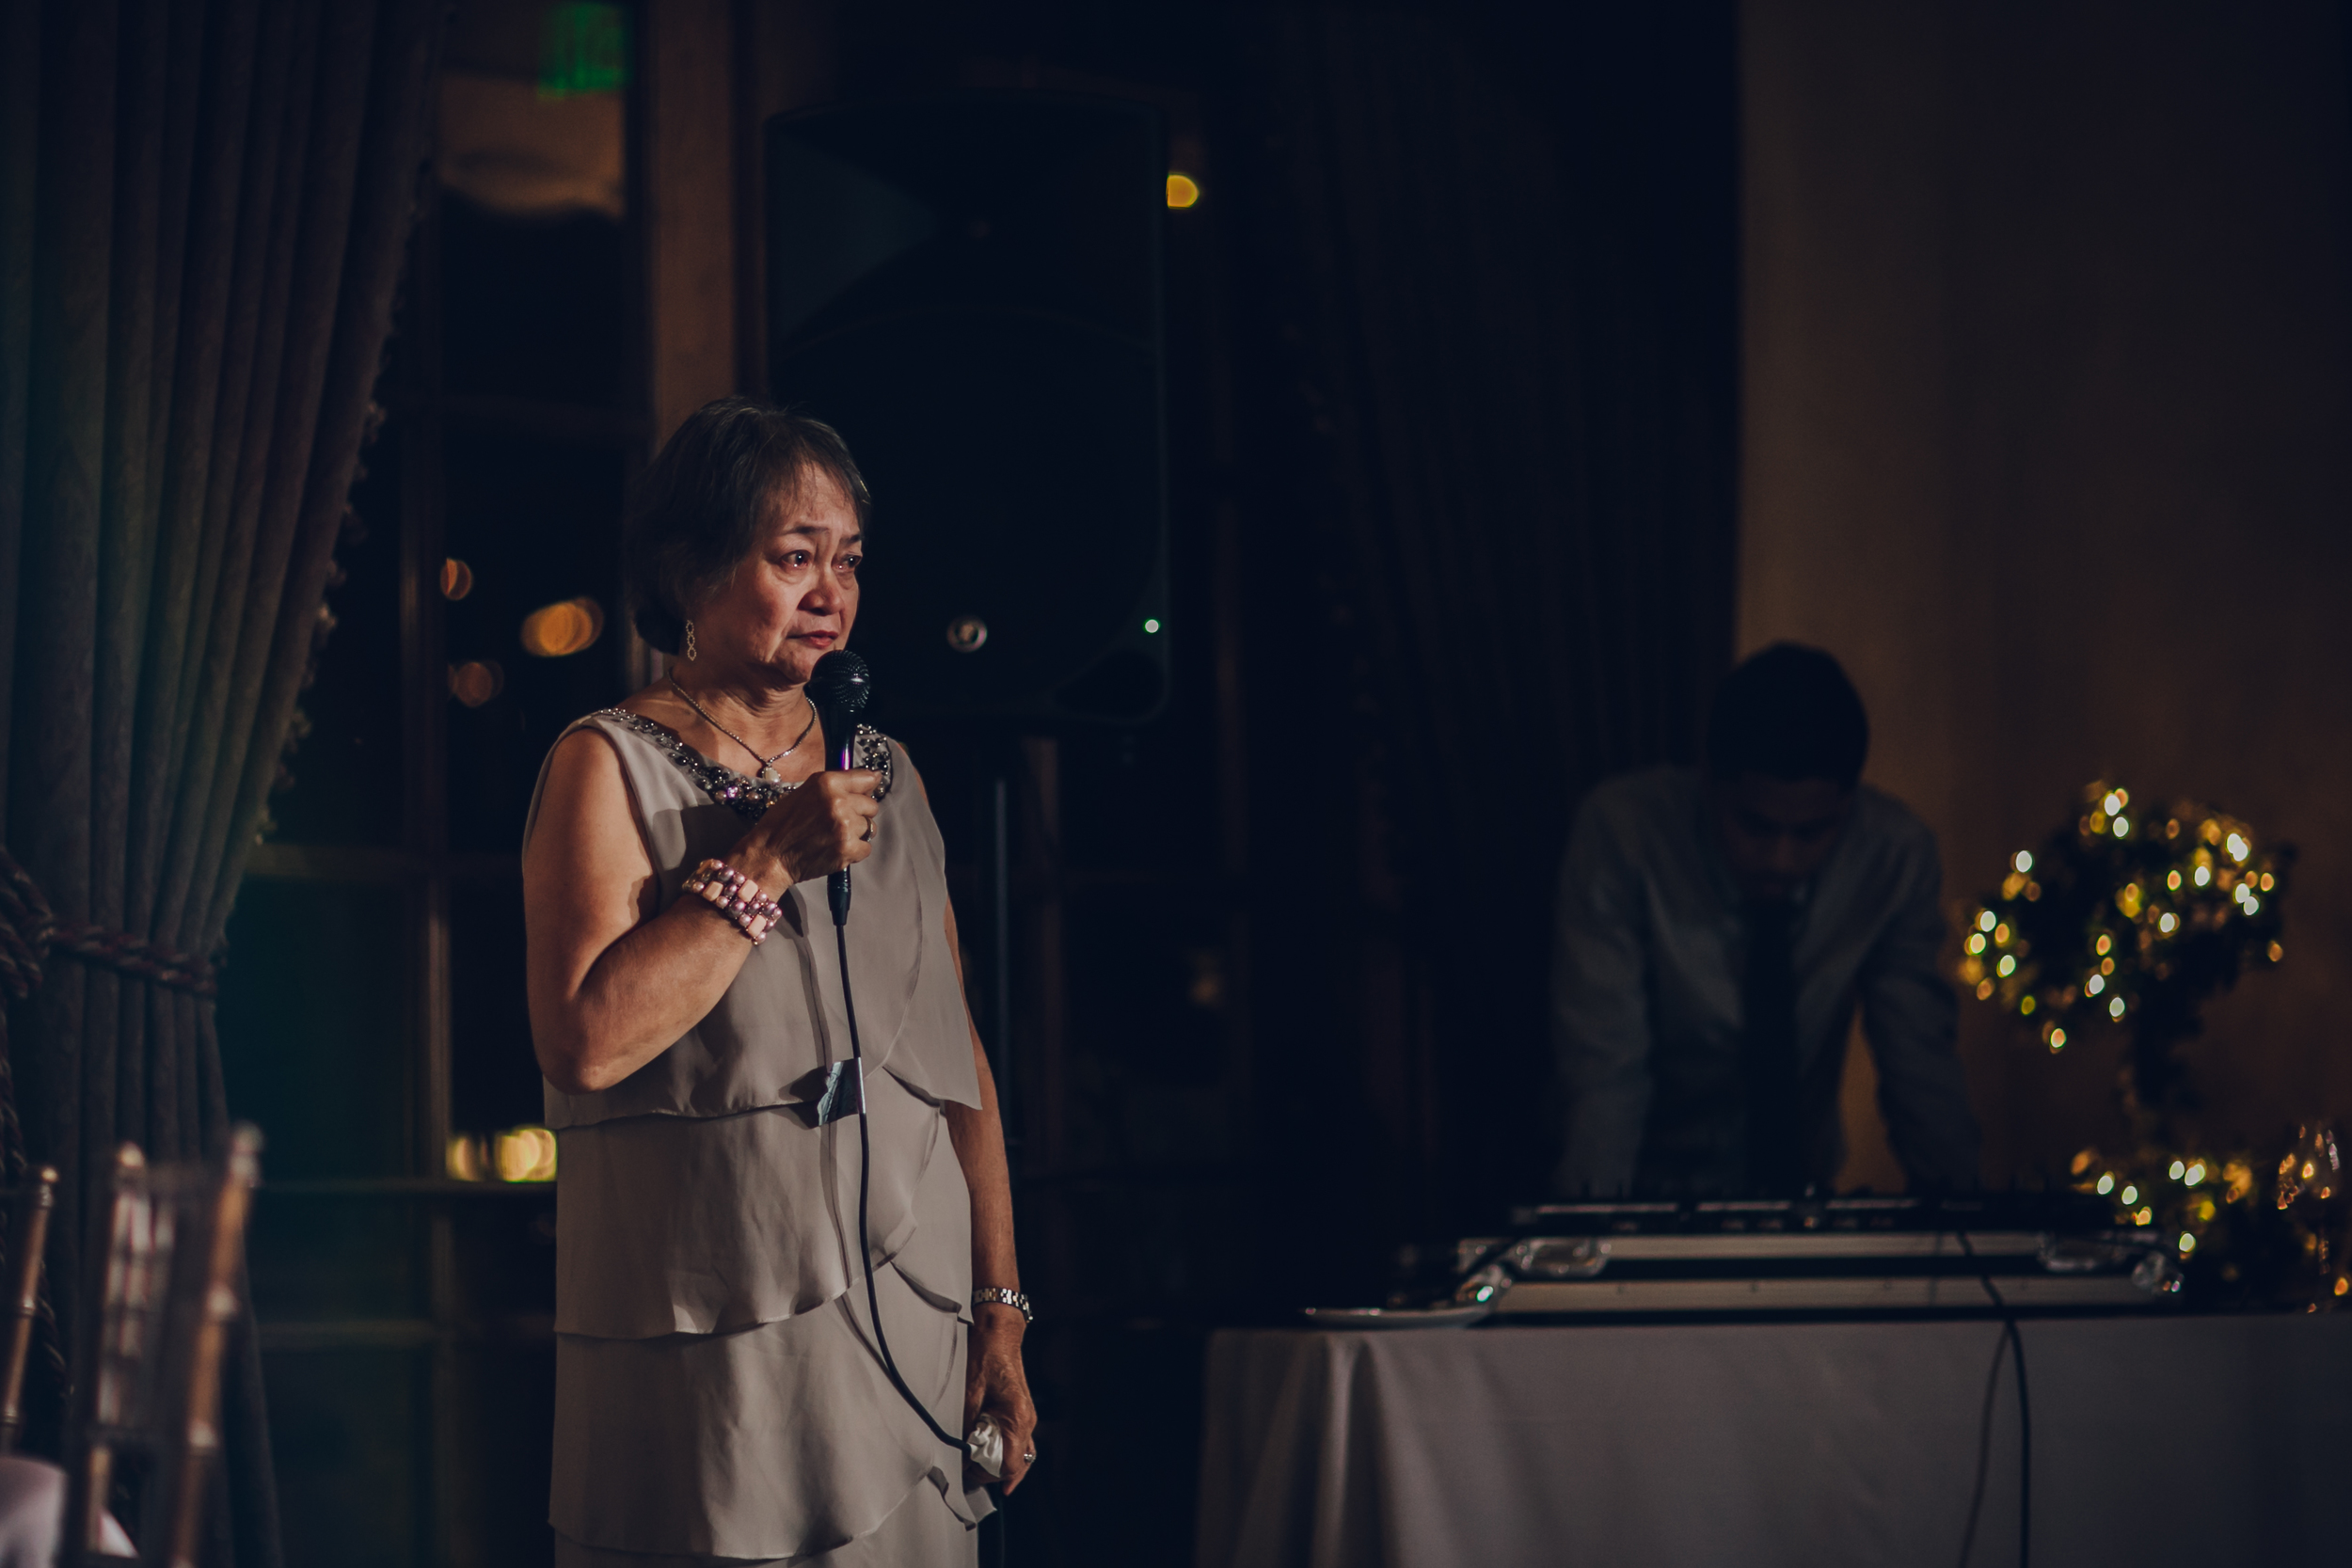 Shiela + Lester's Wedding 9-30-15 401.jpg